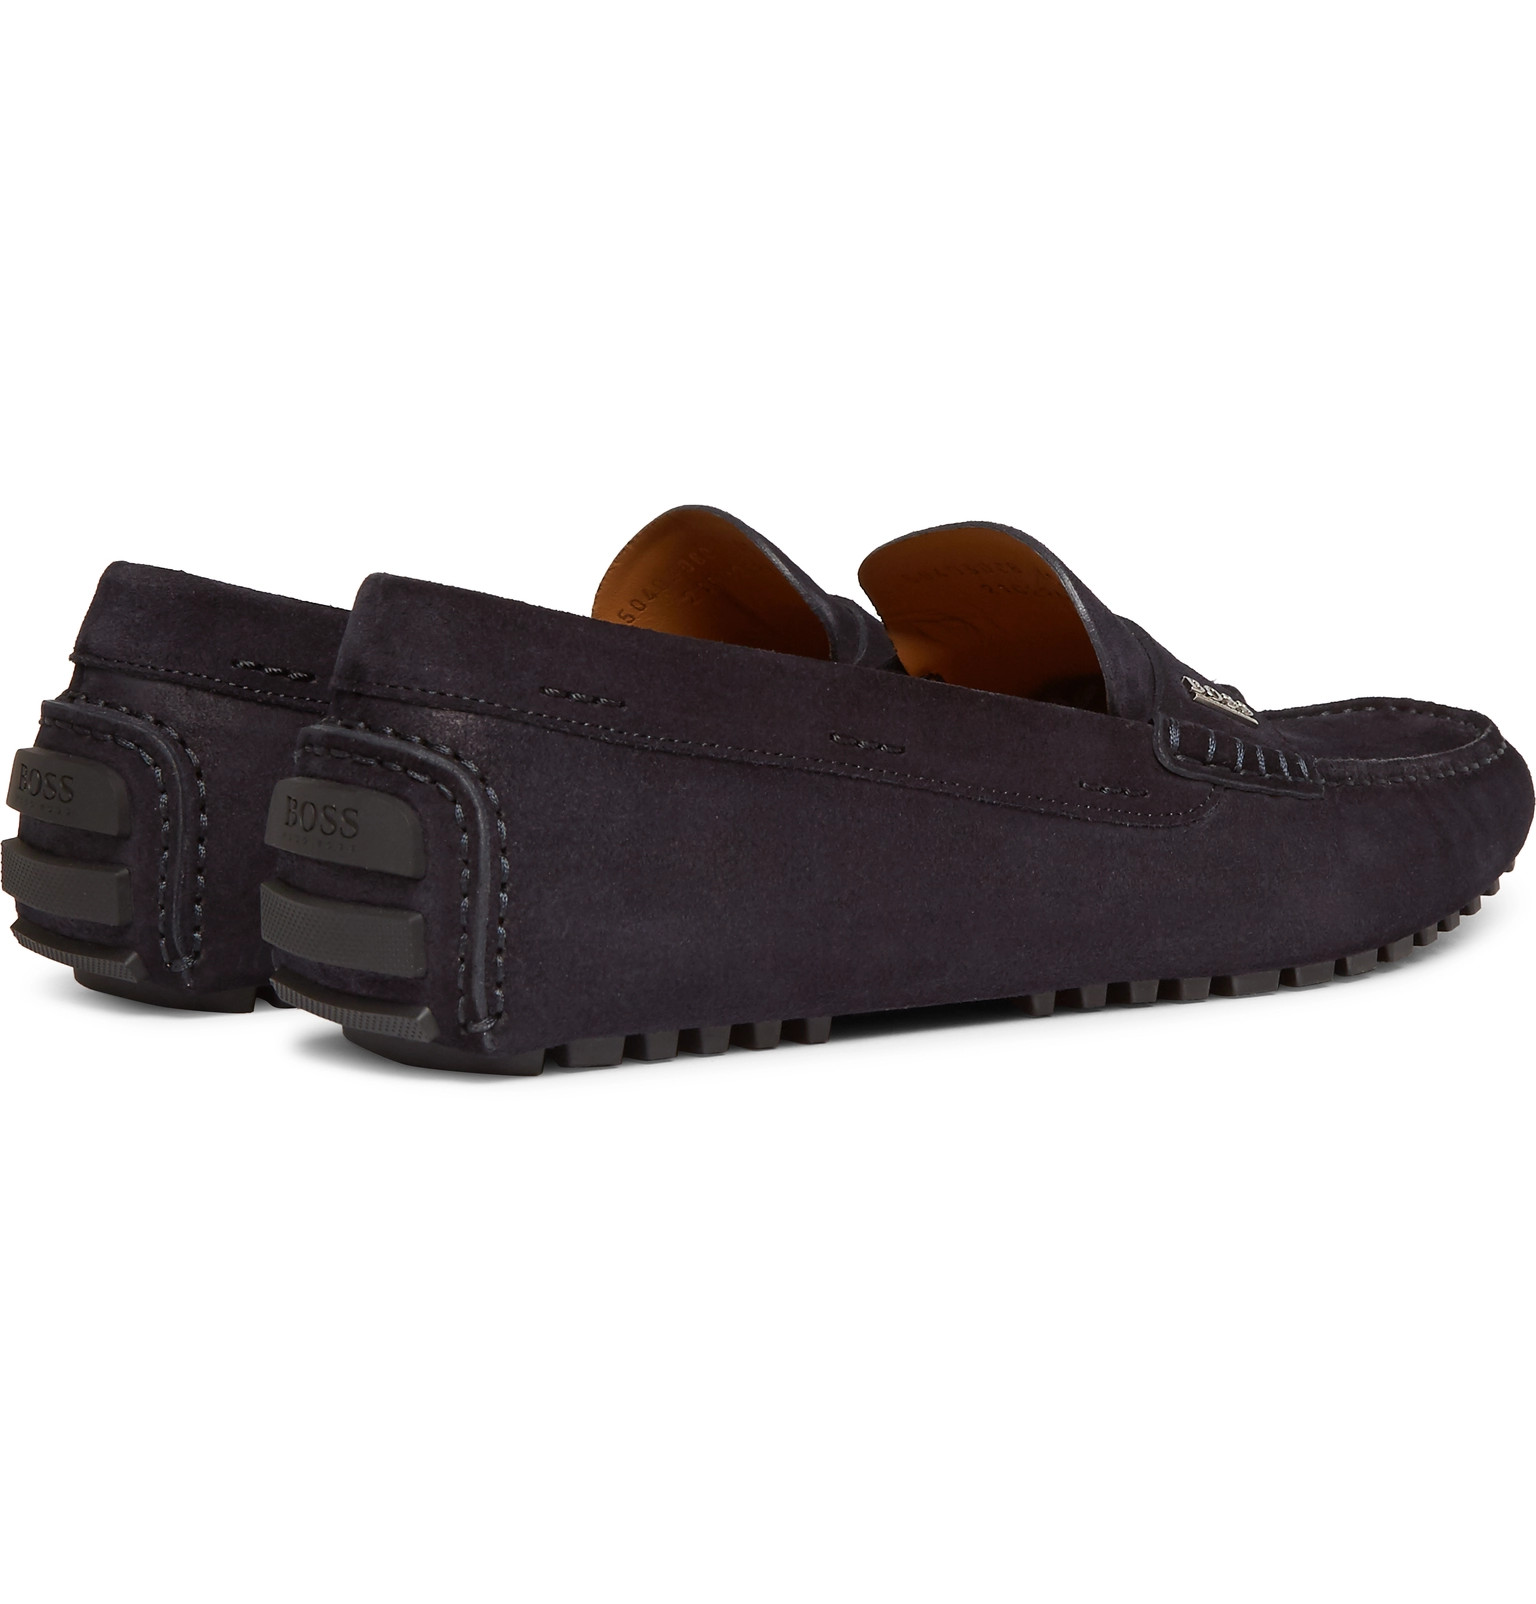 3dc0fdc547e Hugo Boss - Suede Driving Shoes